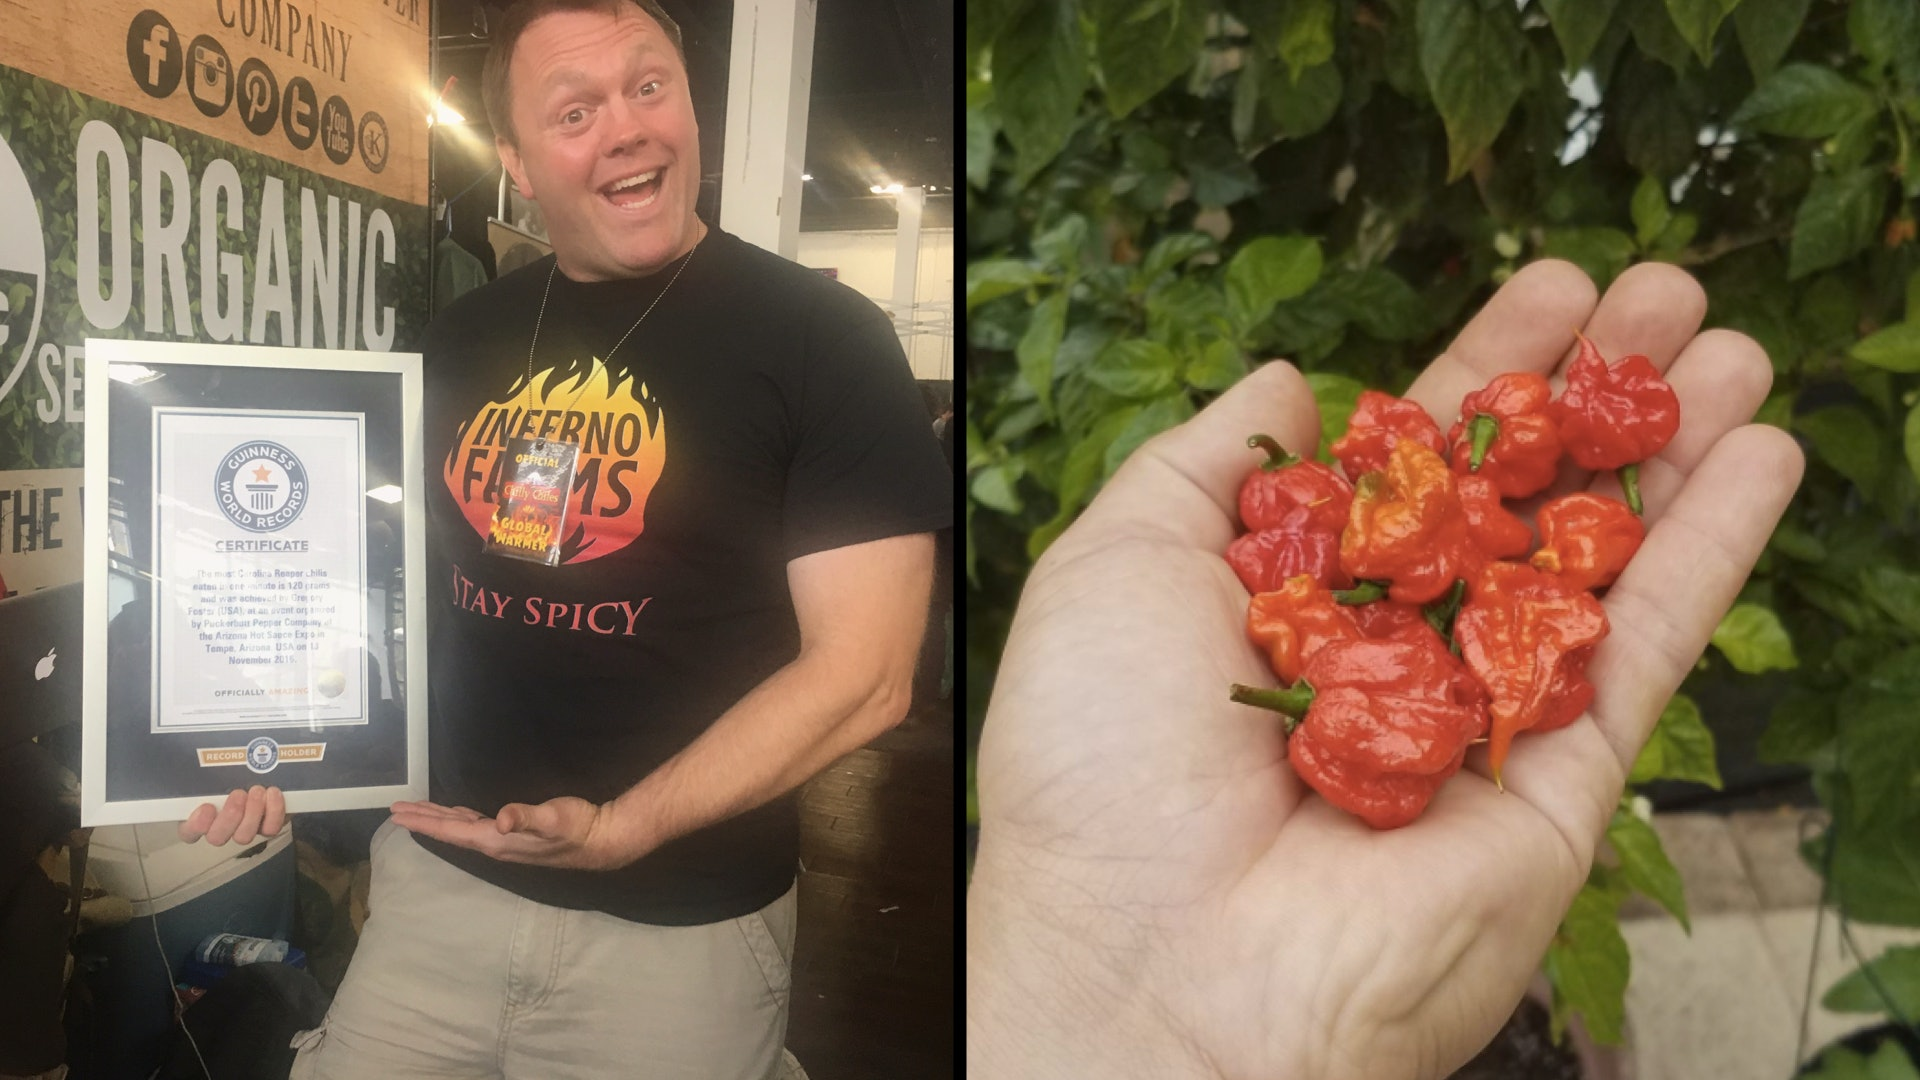 How to survive the world's hottest pepper, according to the